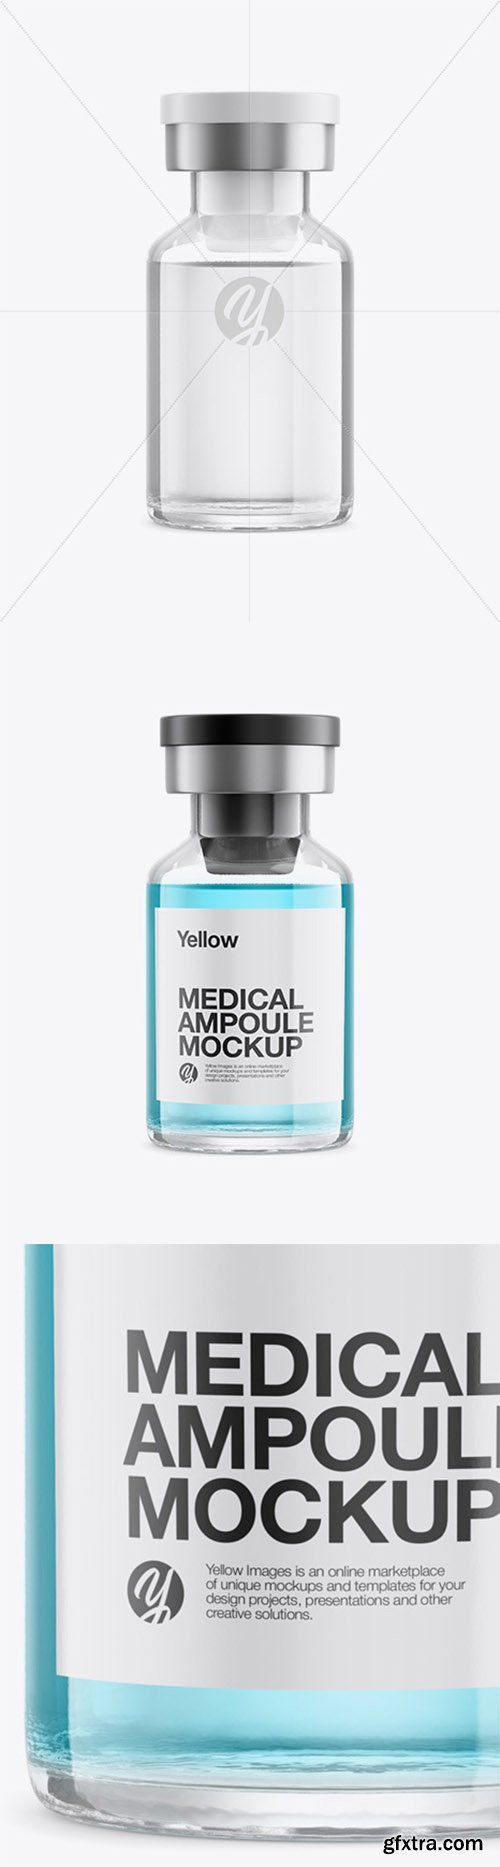 Medical Ampoule Mockup - Front View 65725